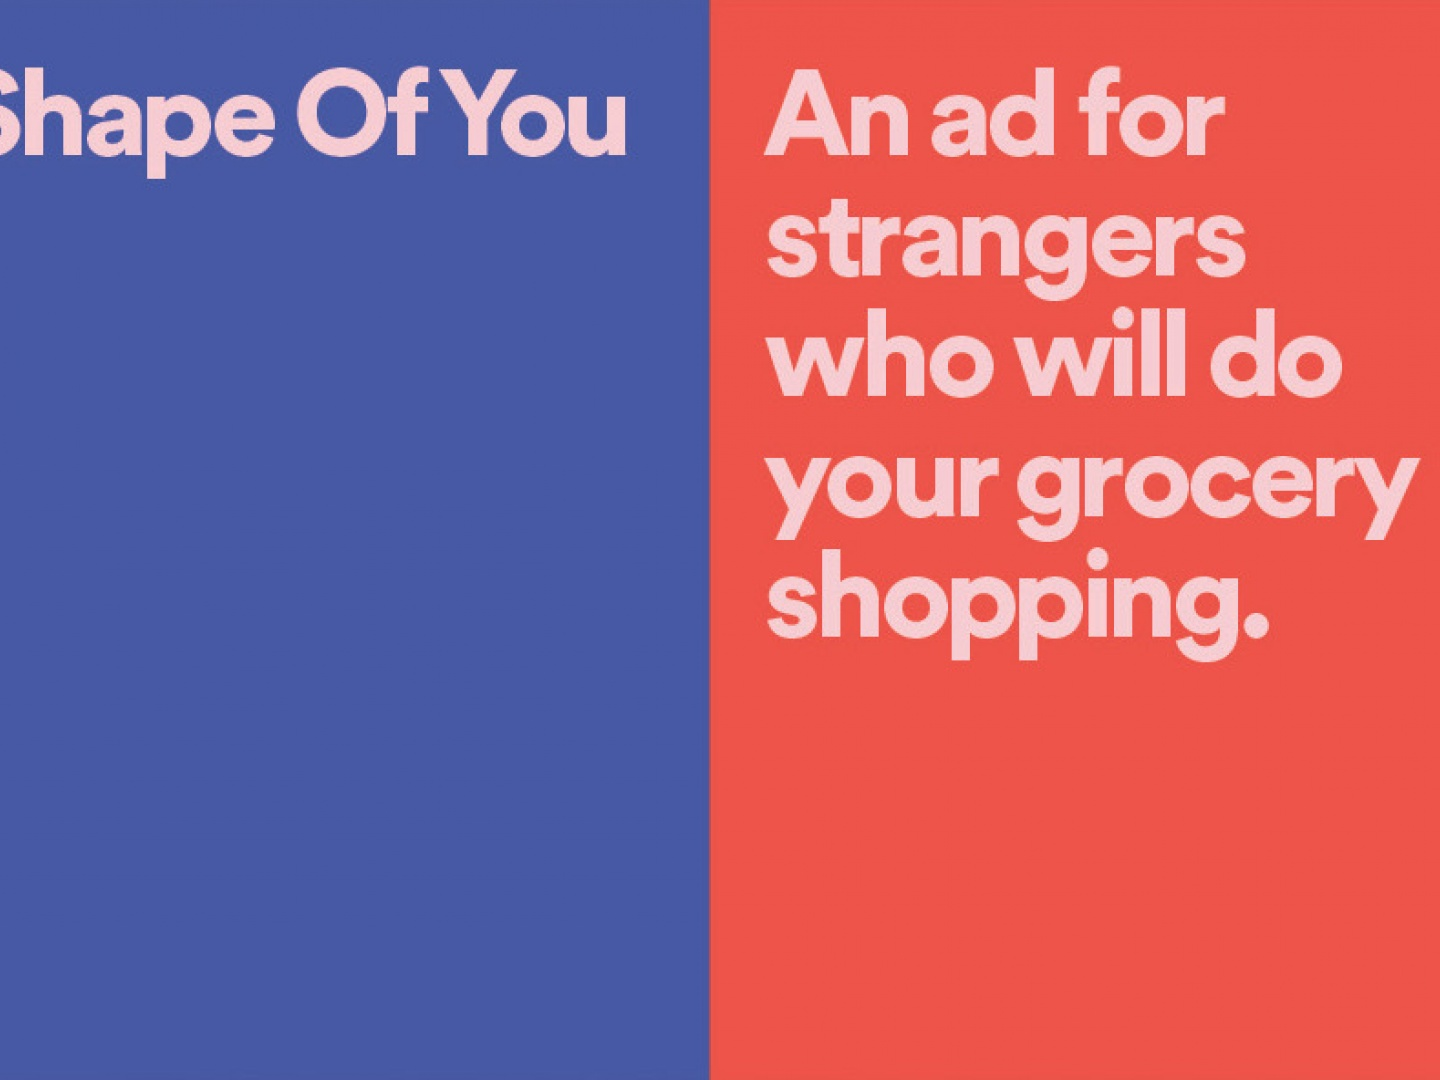 Image for Groceries